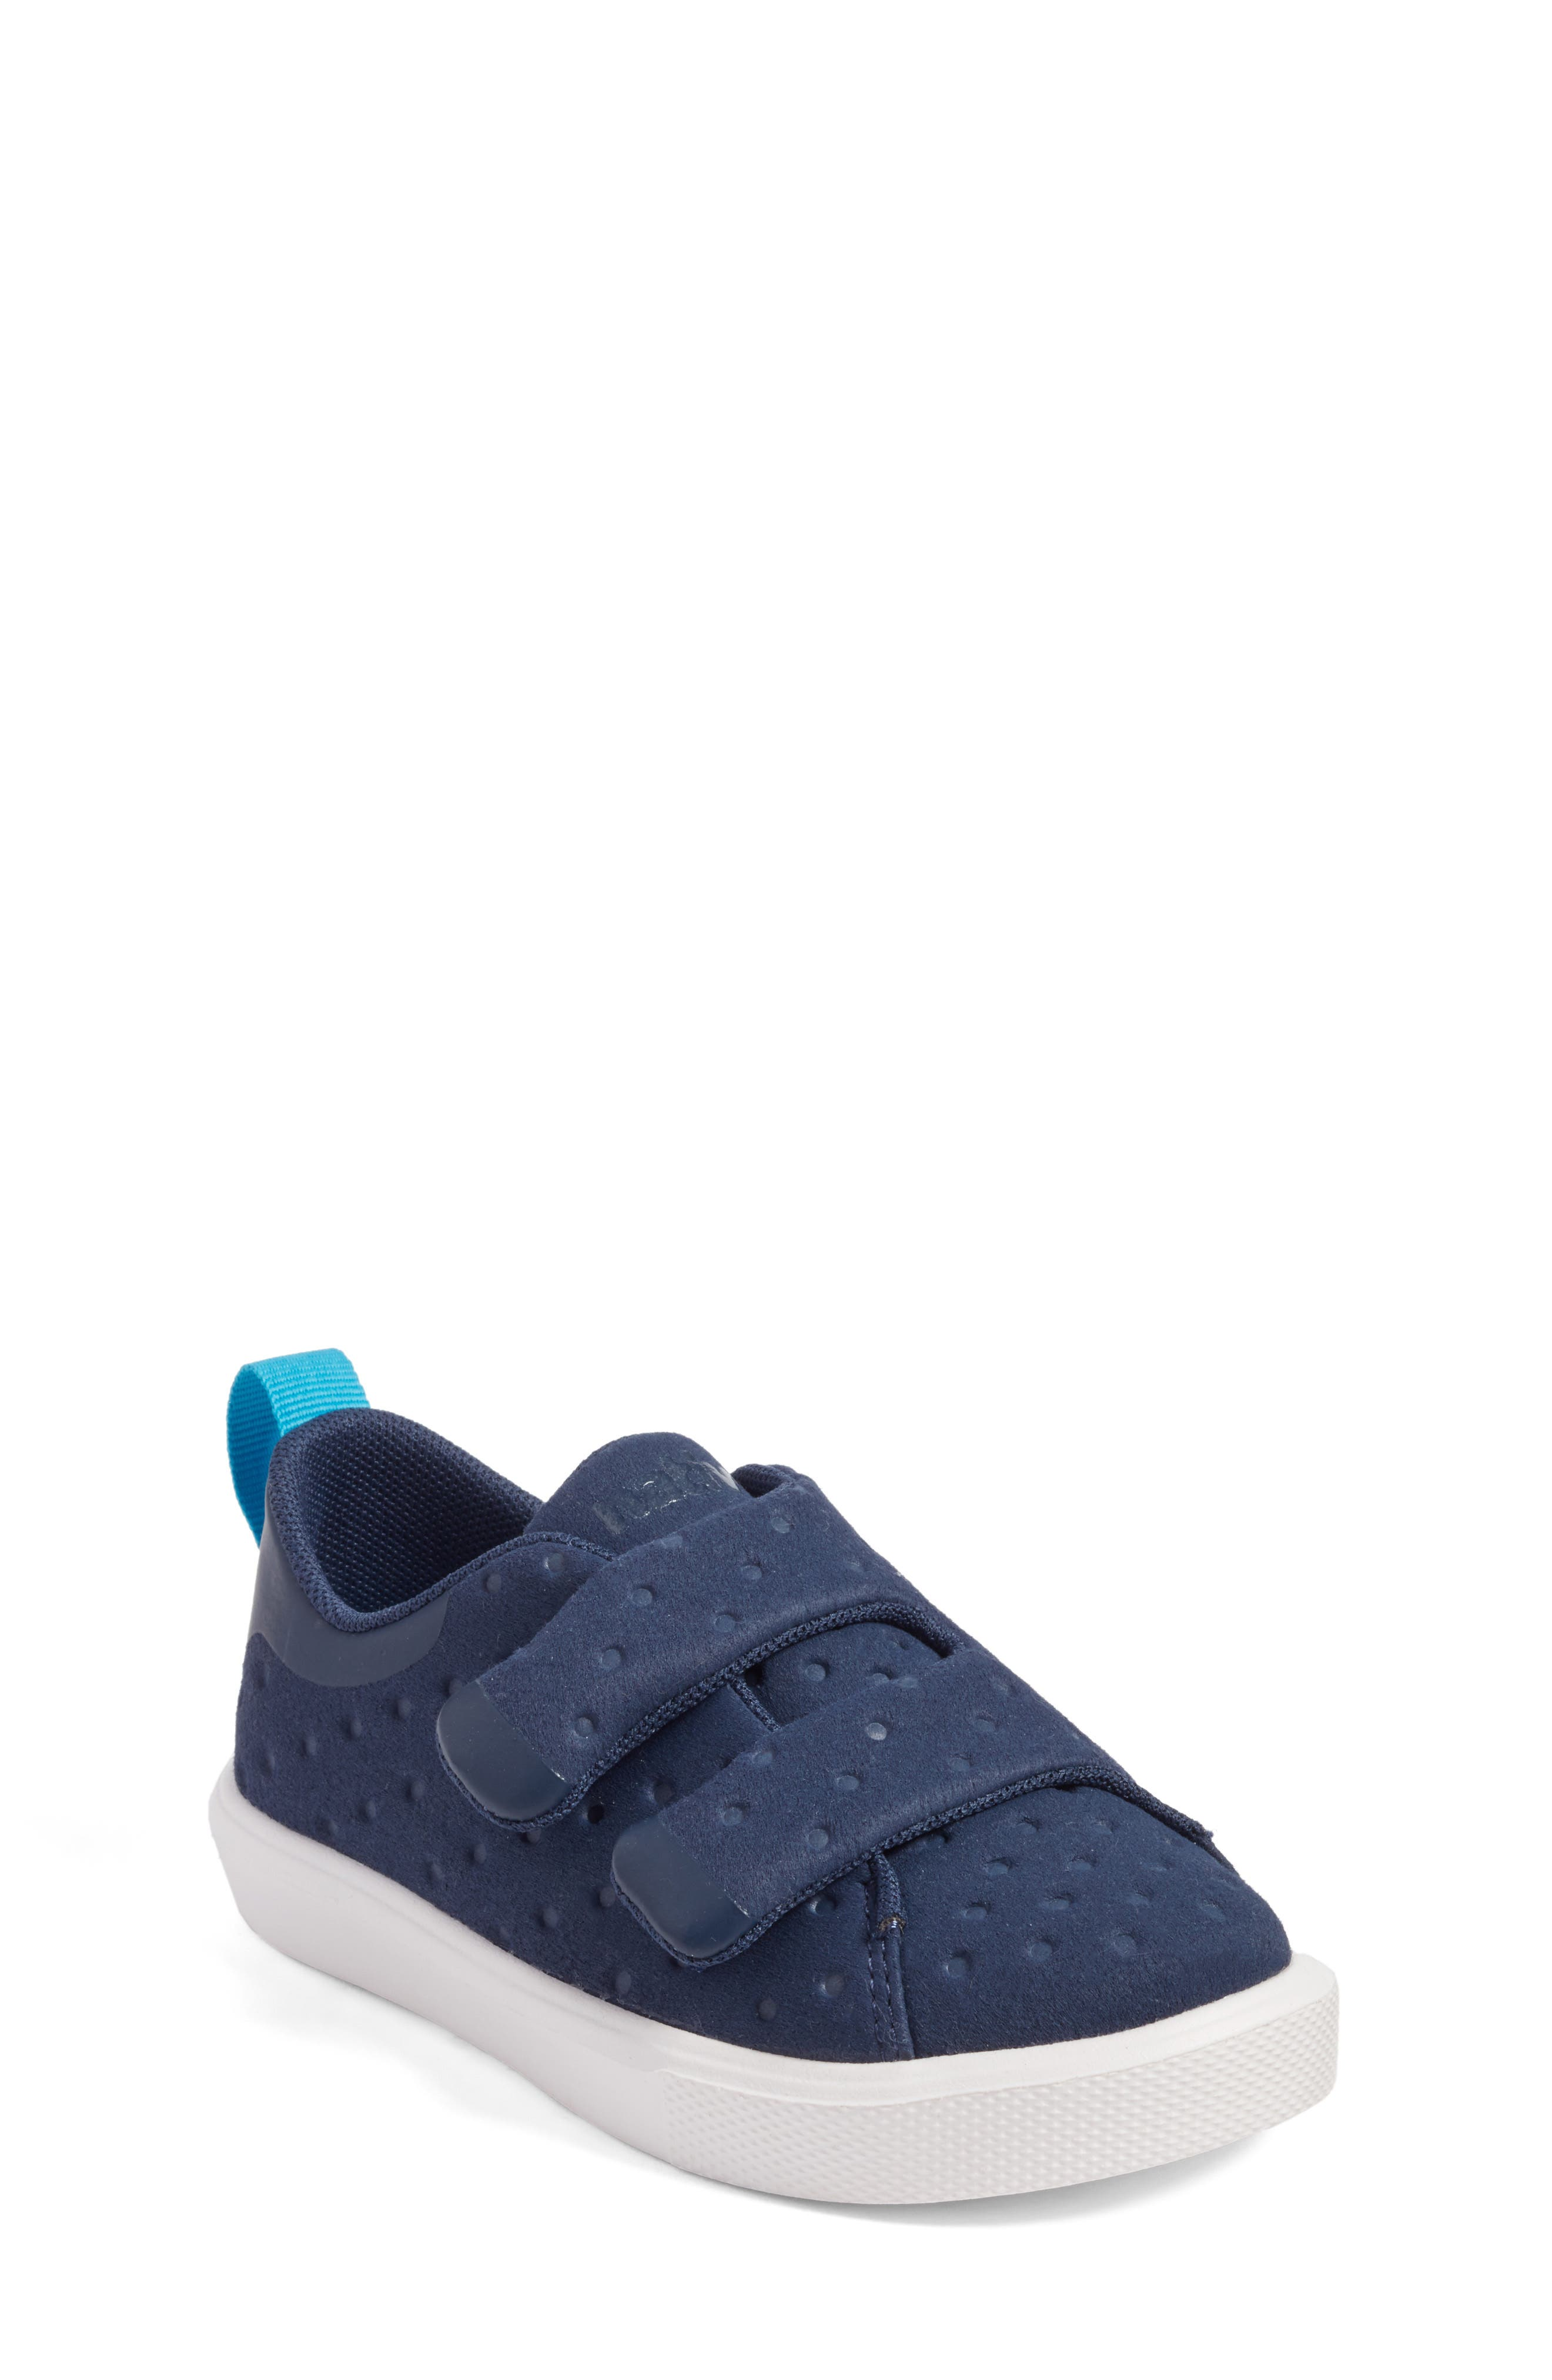 Native Shoes Monaco Sneaker (Walker, Toddler & Little Kid)